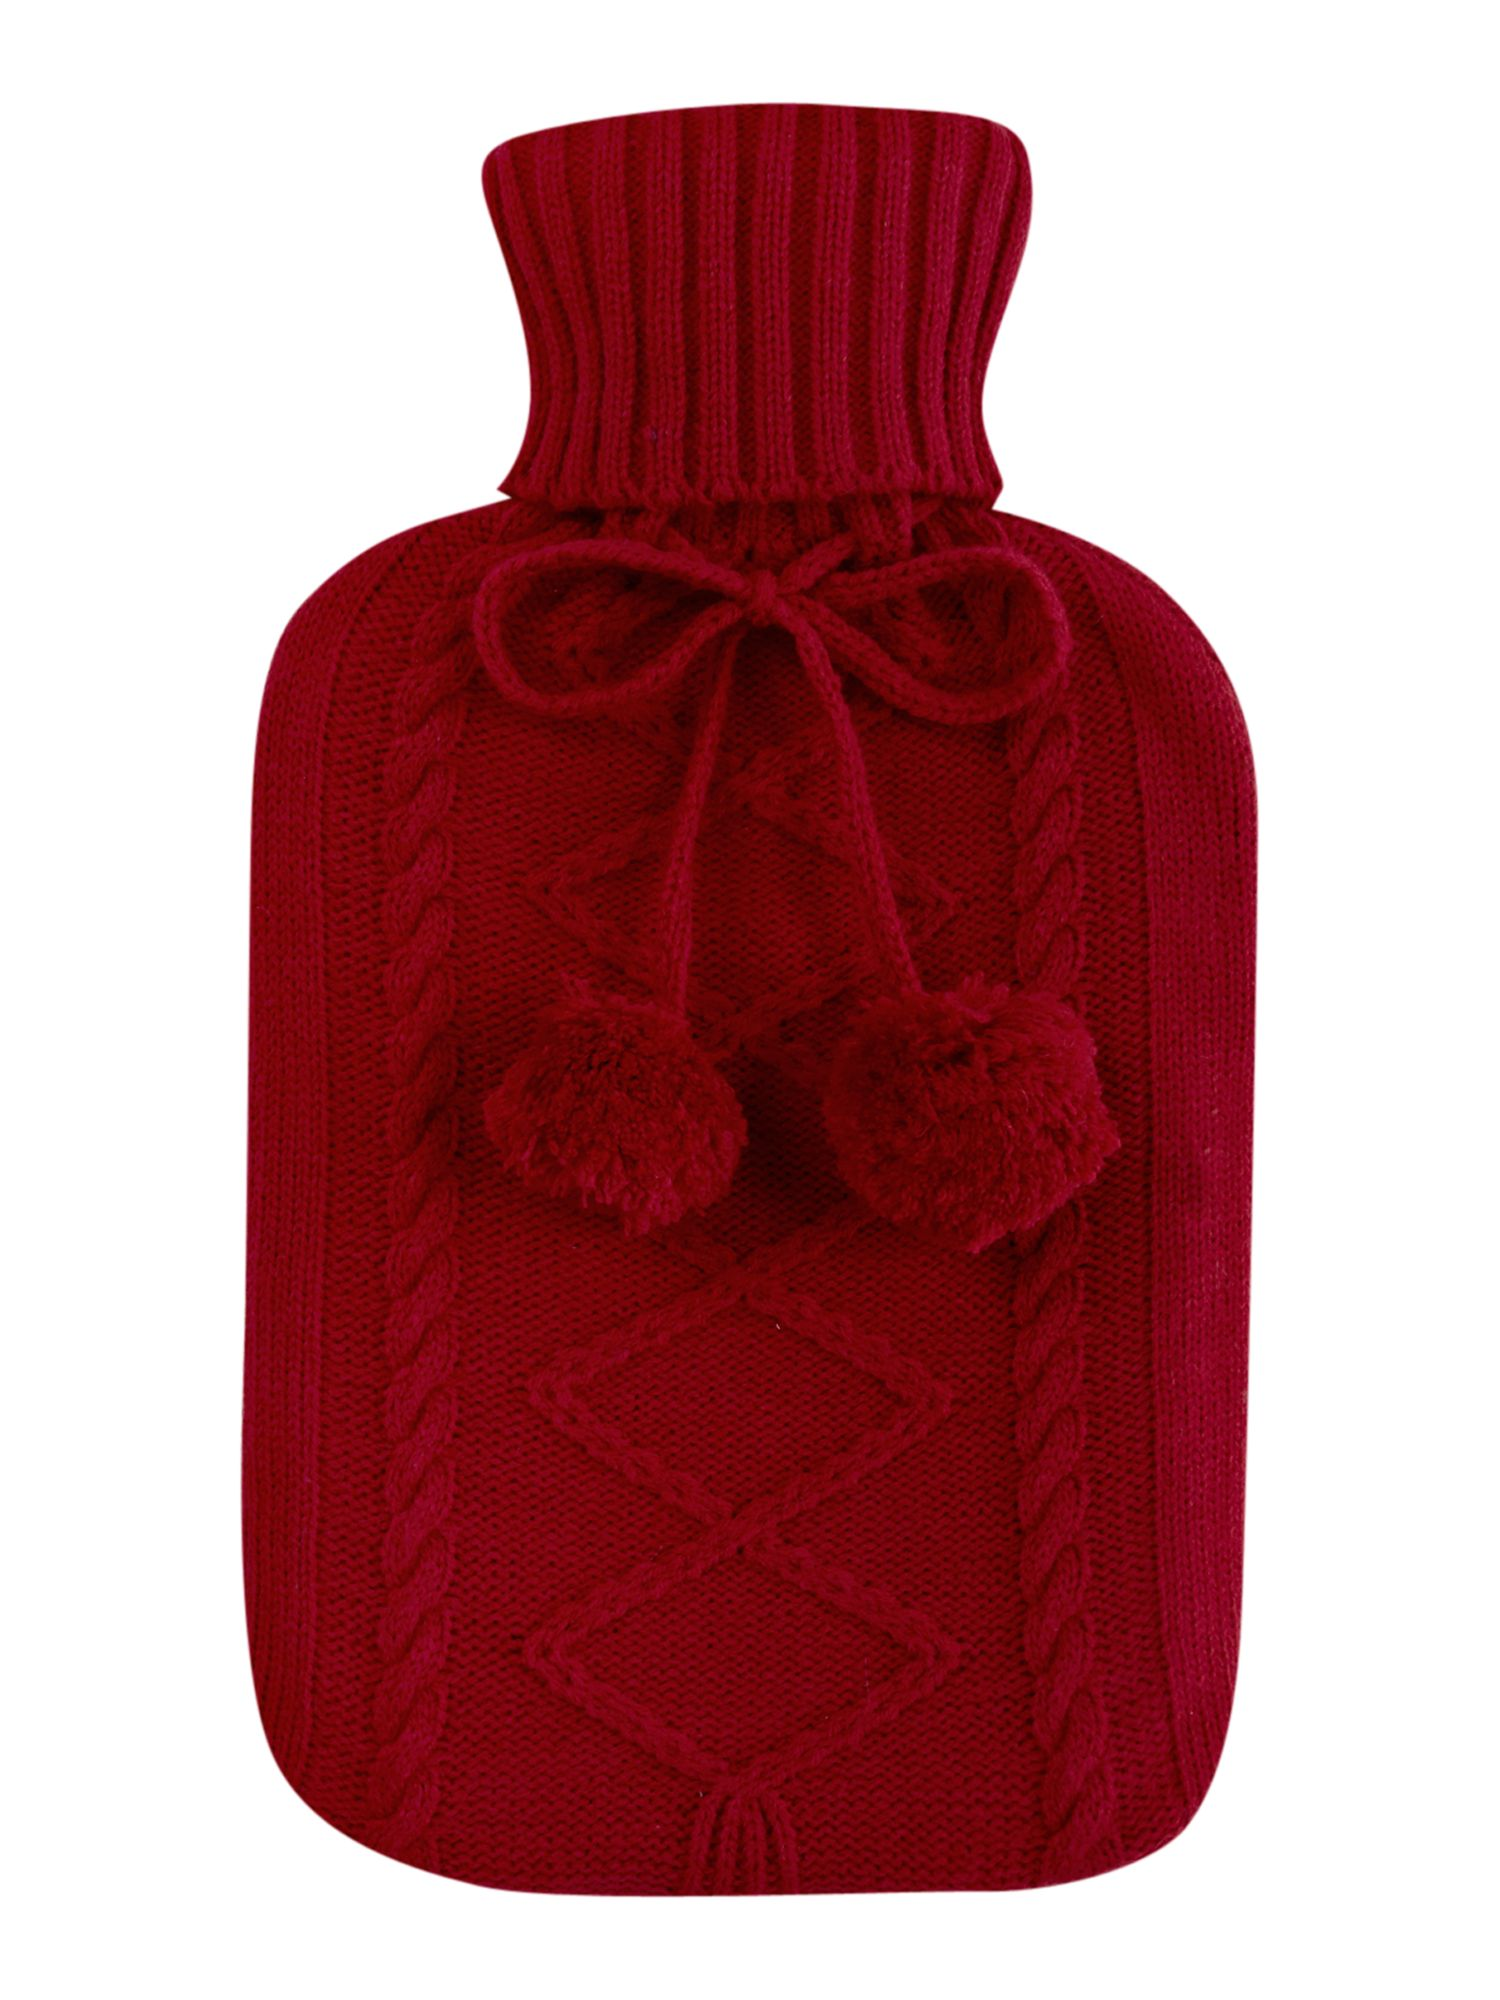 Fuchsia knitted hot water bottle